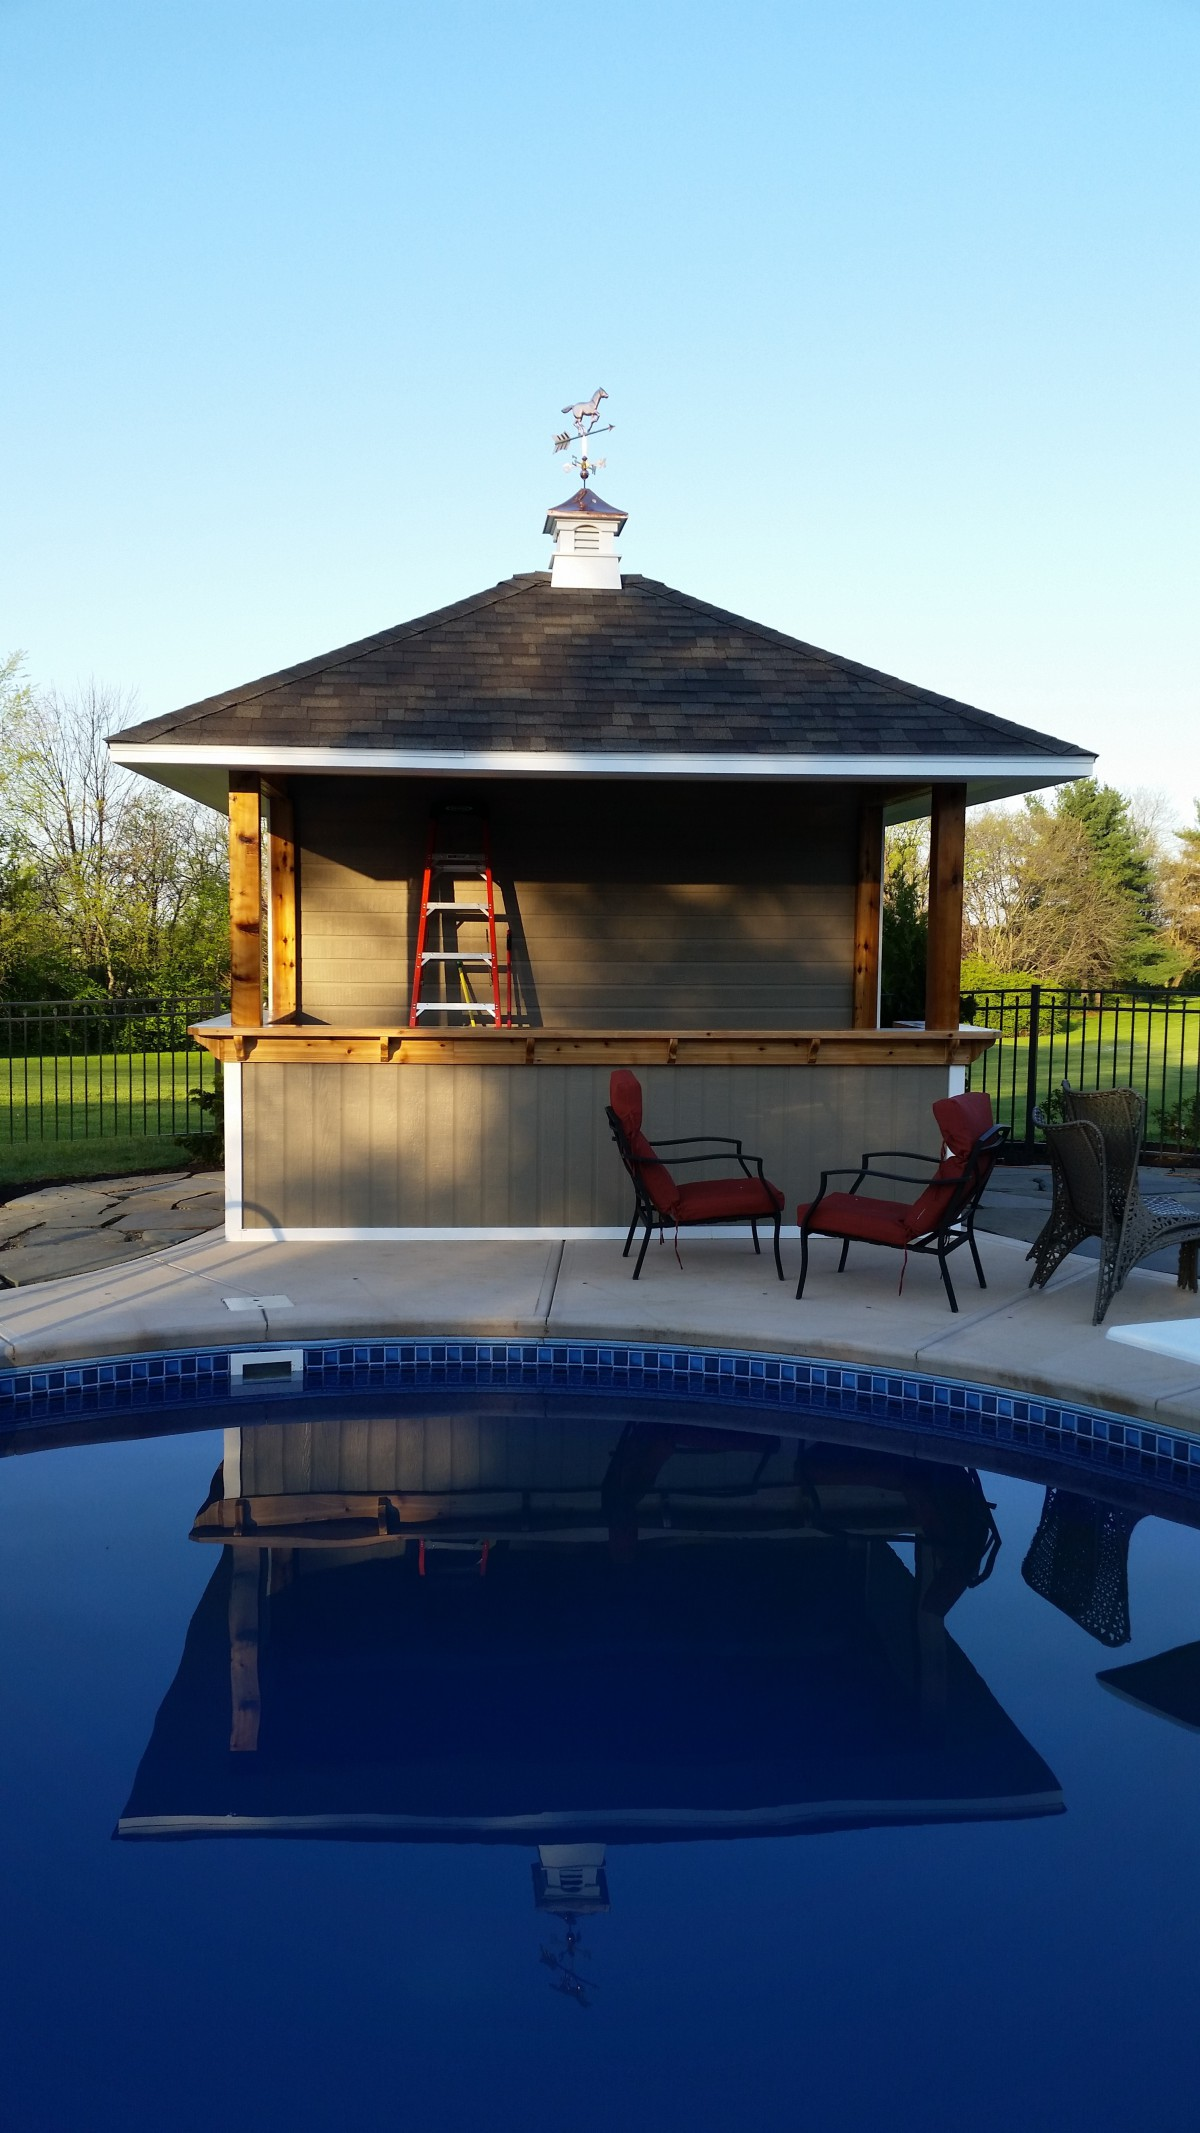 Surfside pool house design 10x12 with a cupola side profile by a poolside seen from the front2. ID number